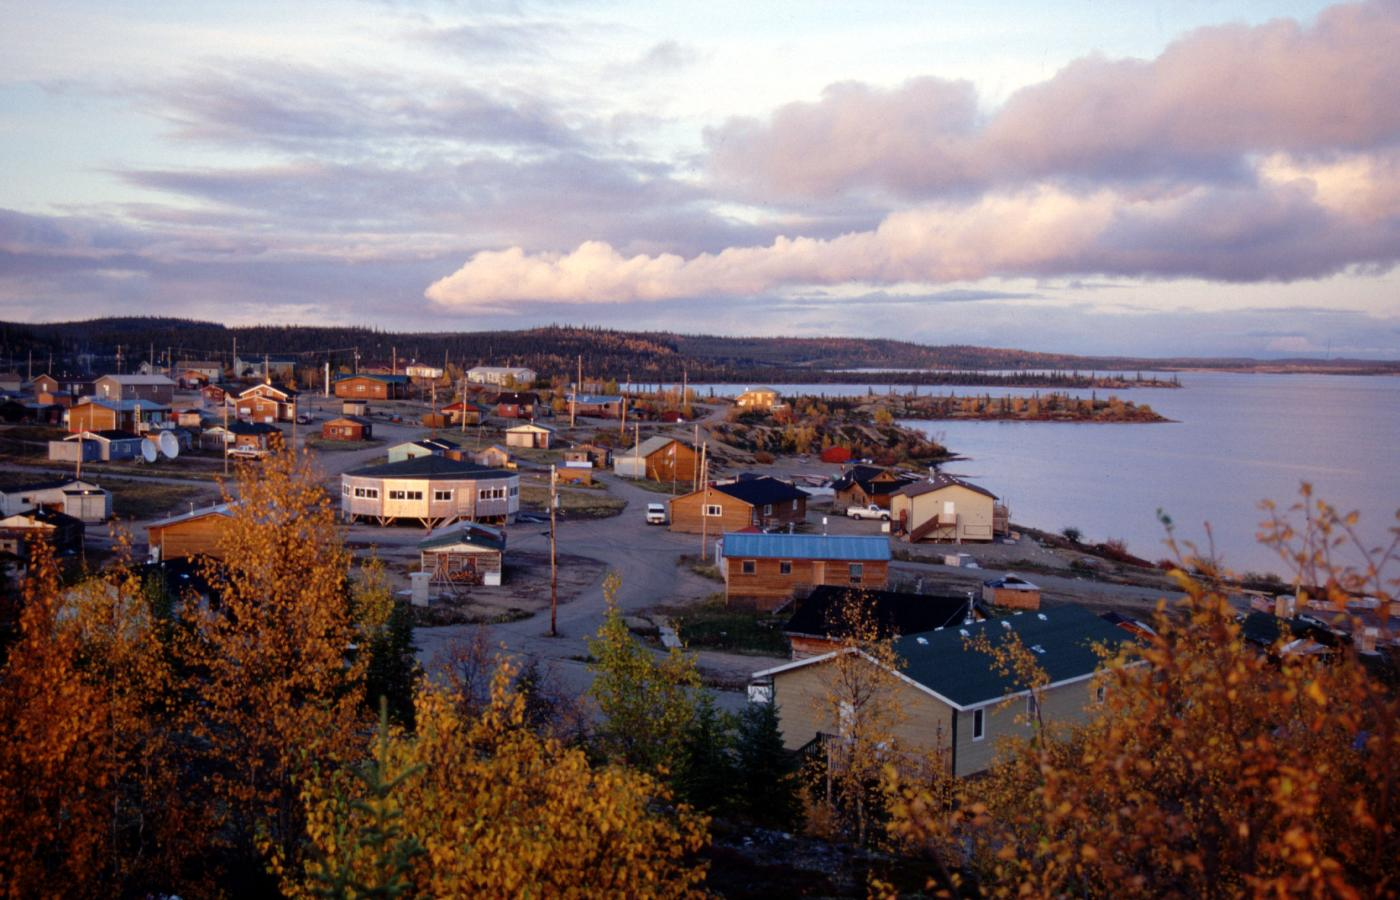 The town of Wekweeti, Northwest Territories, Canada, on the cusp of the treeline.